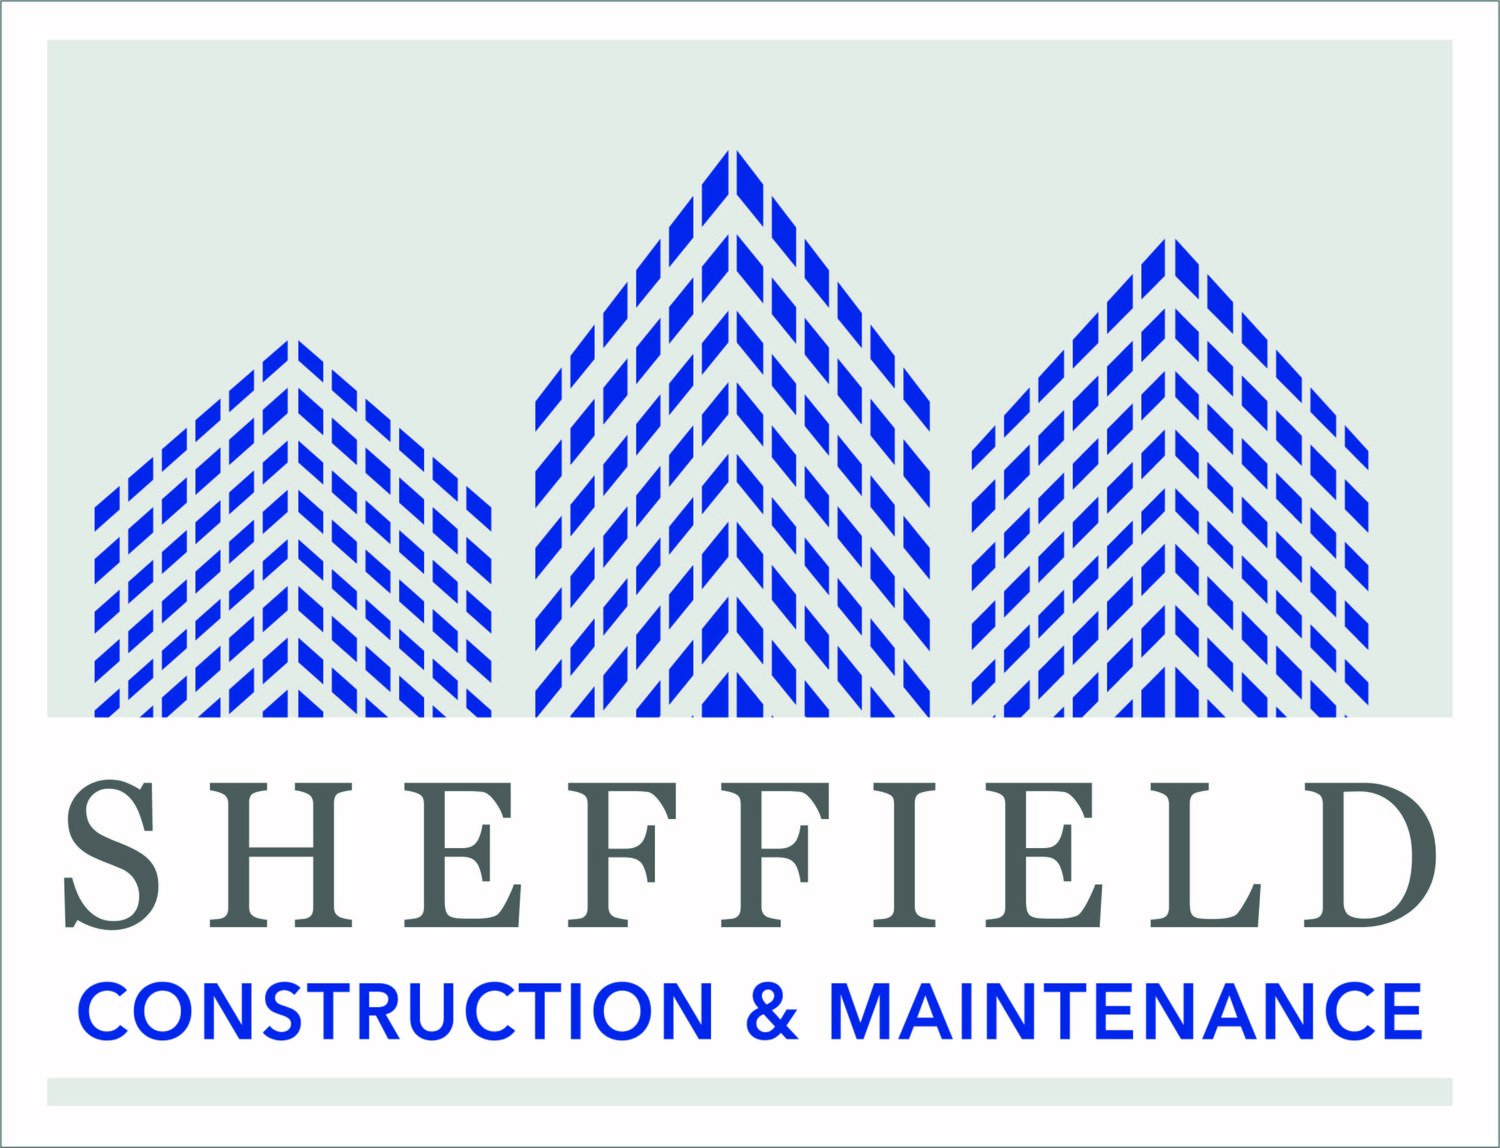 Sheffield Construction and Maintenance